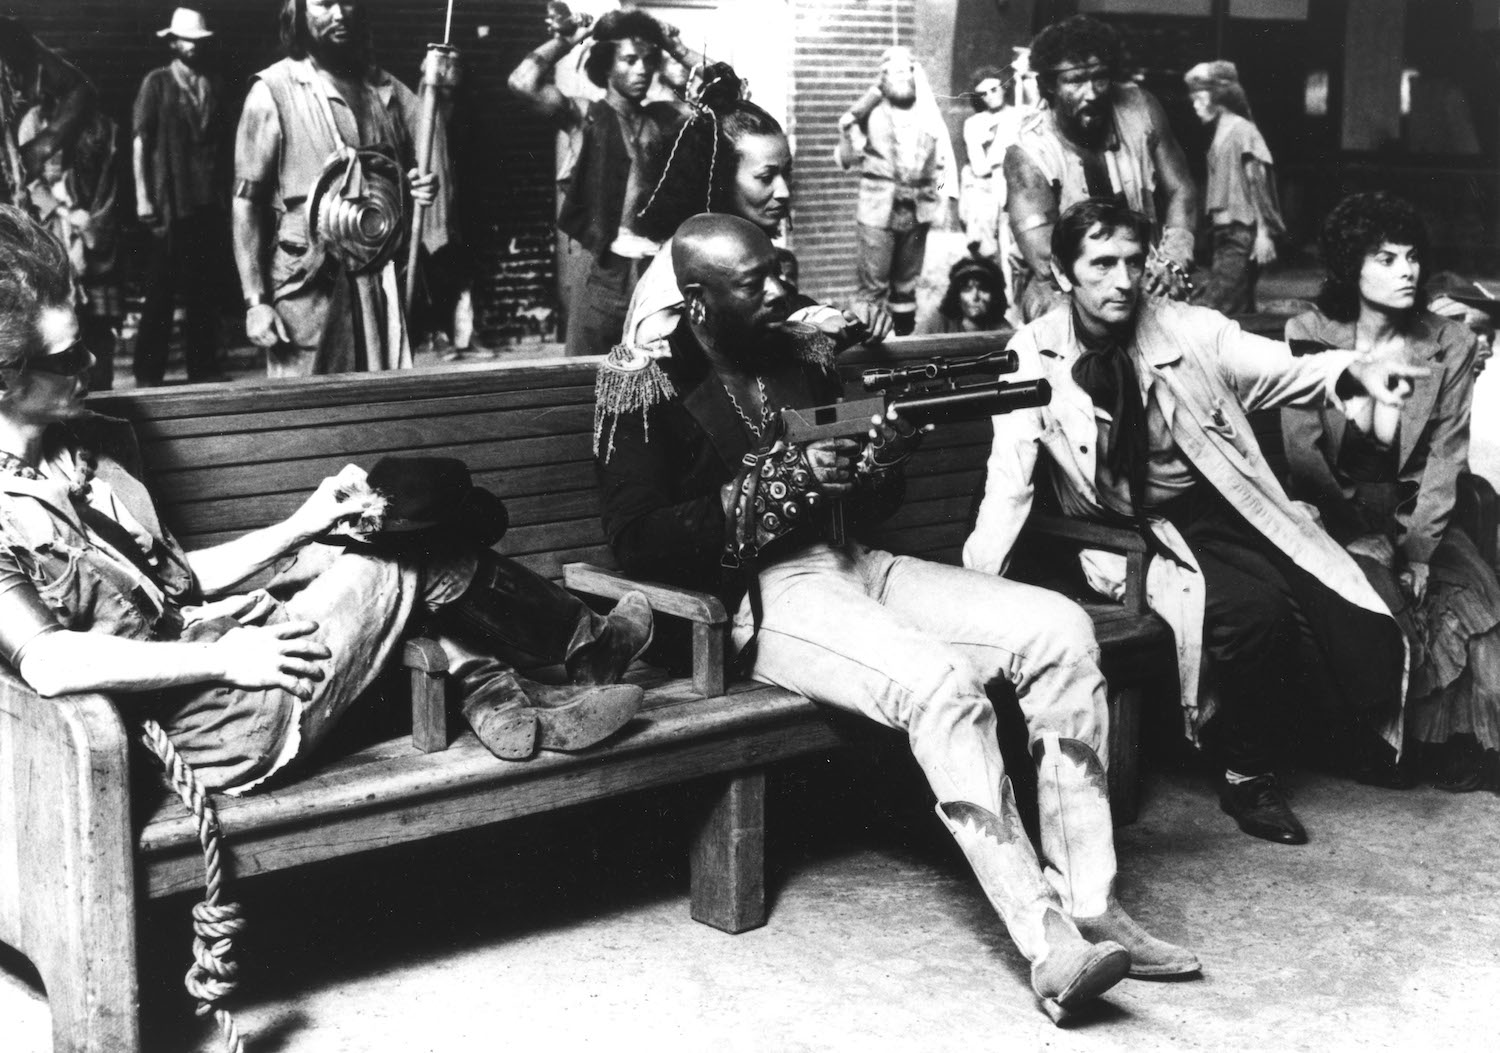 Escape From New York - 1981 Frank Doubleday, Isaac Hayes, Harry Dean Stanton, Adrienne Barbeau 1981